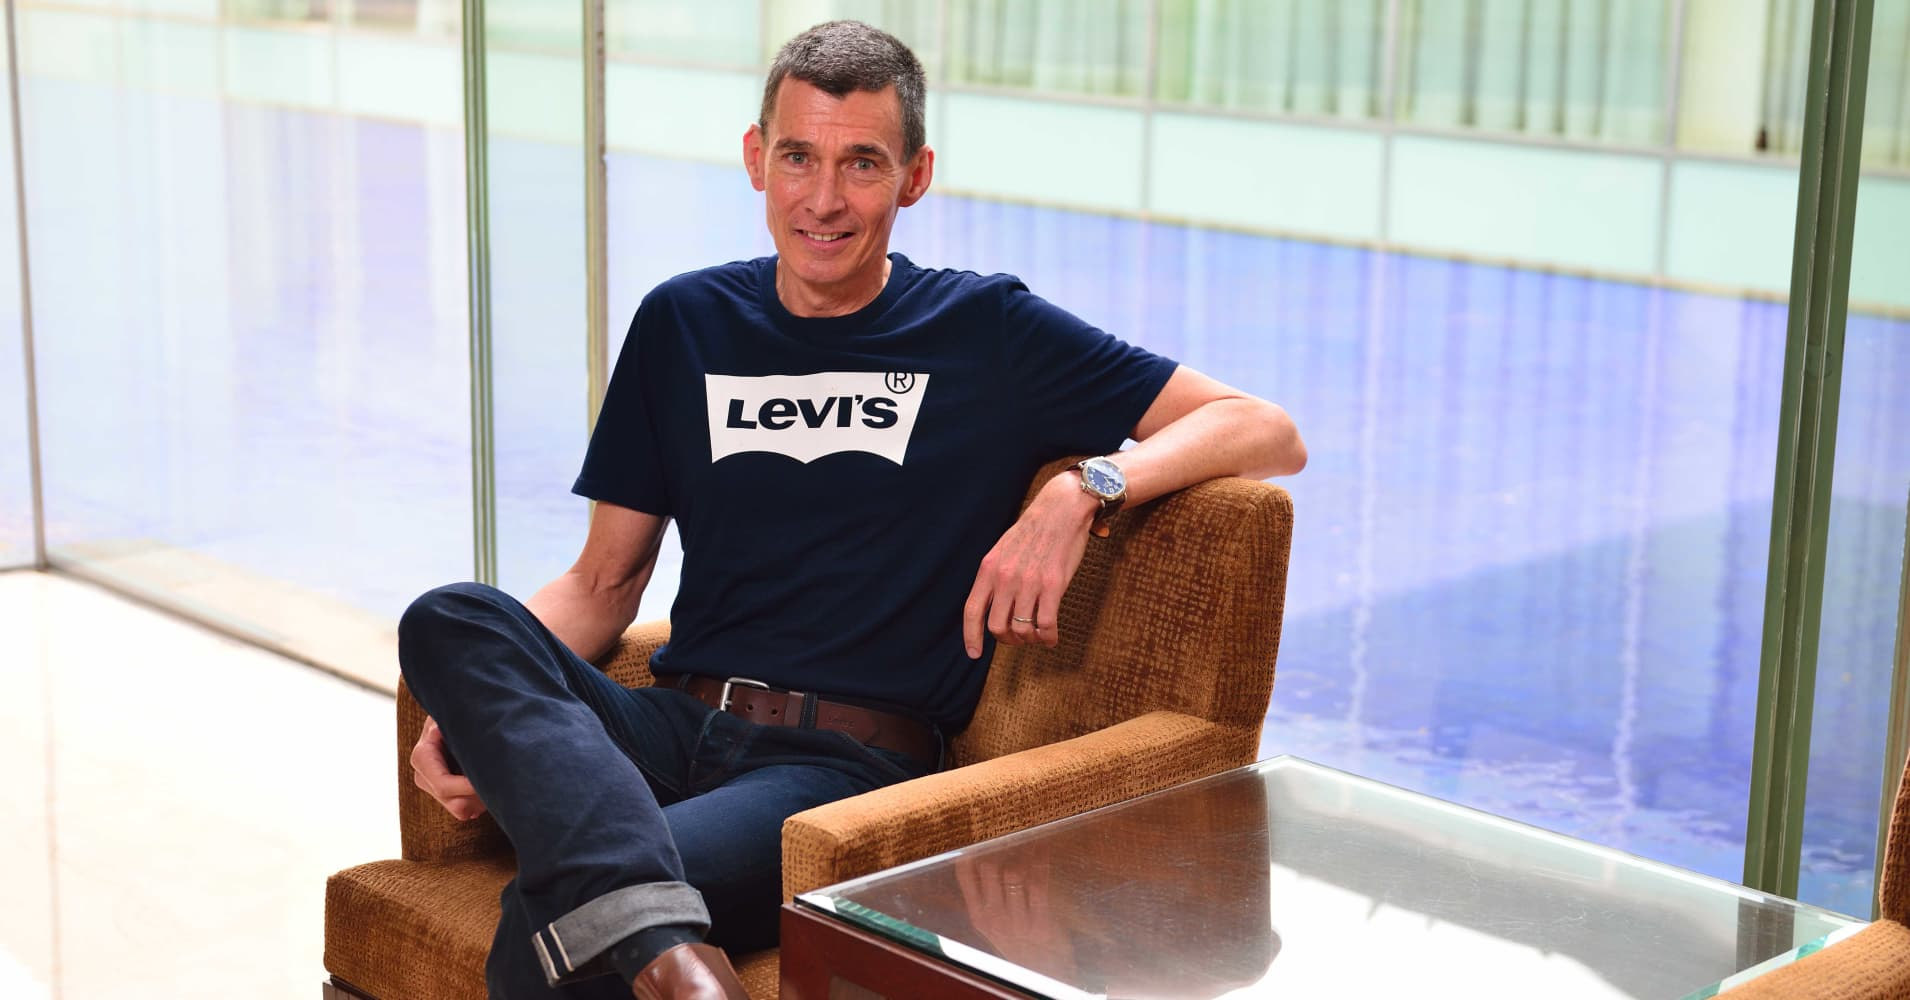 Levi Strauss shares surge, as jean giant makes return to the public market